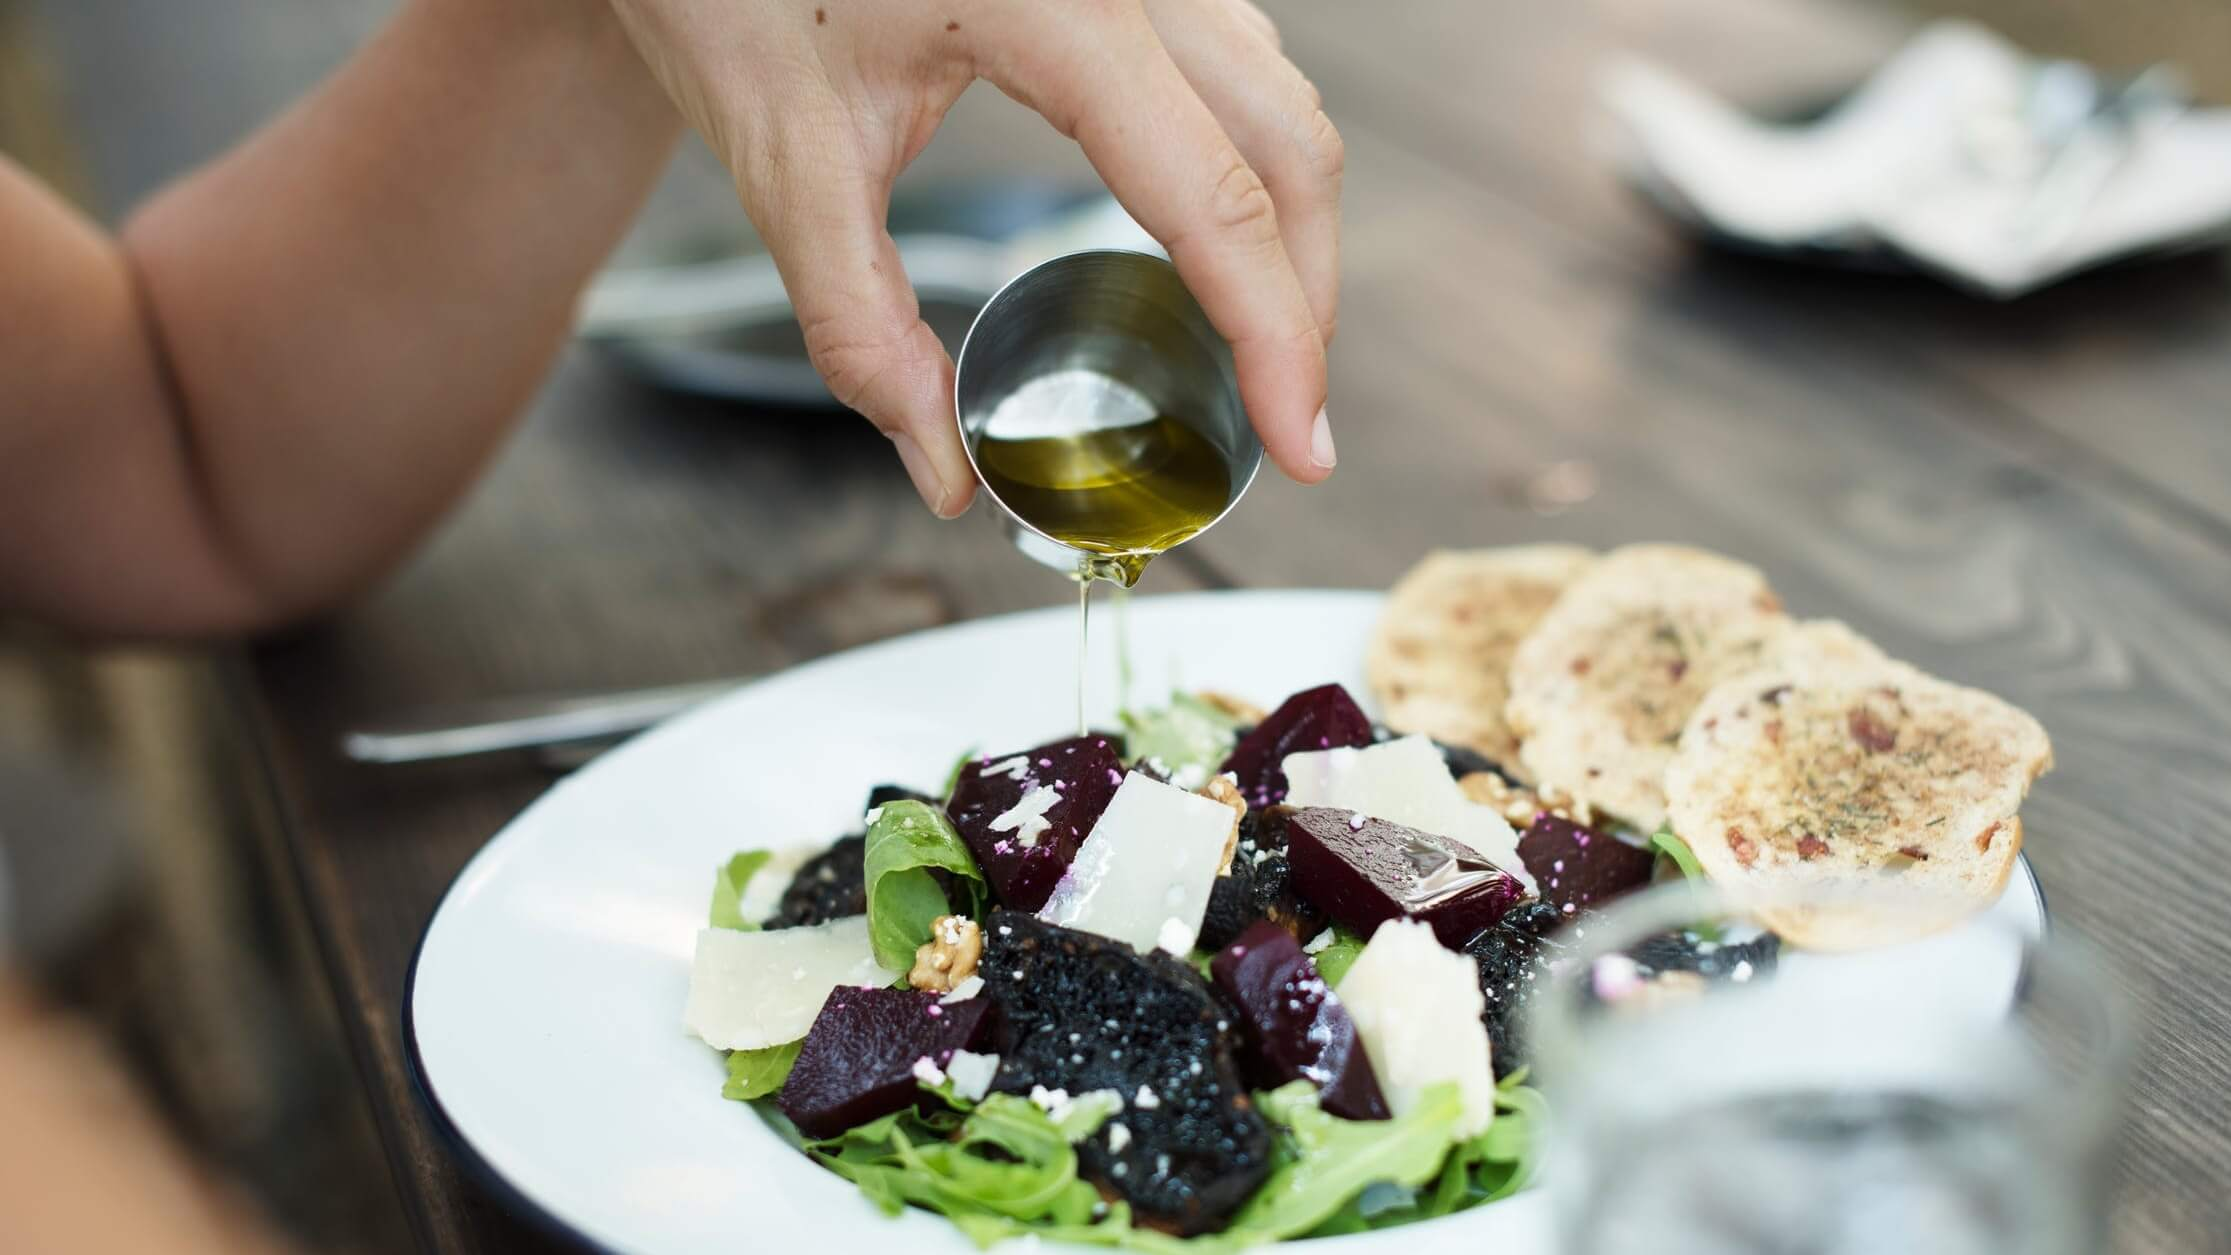 Vegan Cheese Brand Savour Wins New Zealand's Best Chilled Food Award for Dairy-Free Feta